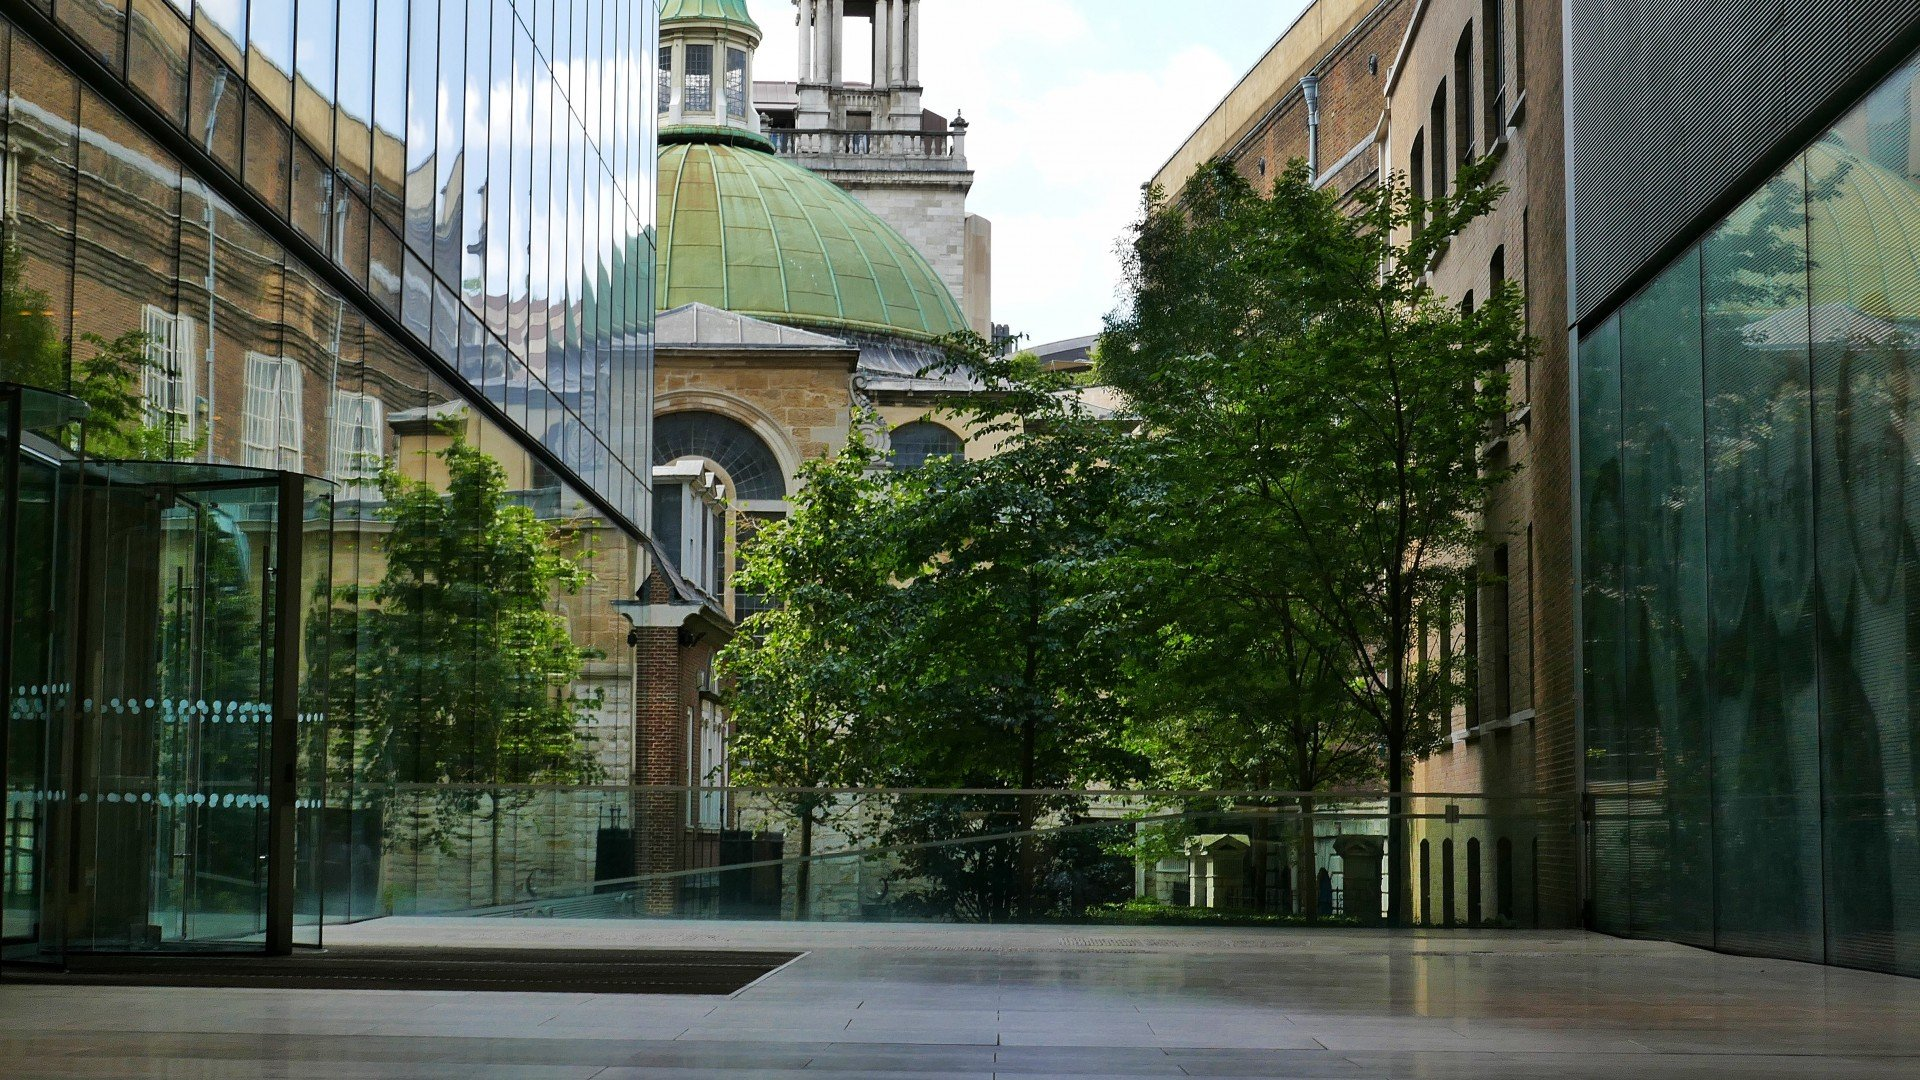 St Pauls in London spotted between two office blocks